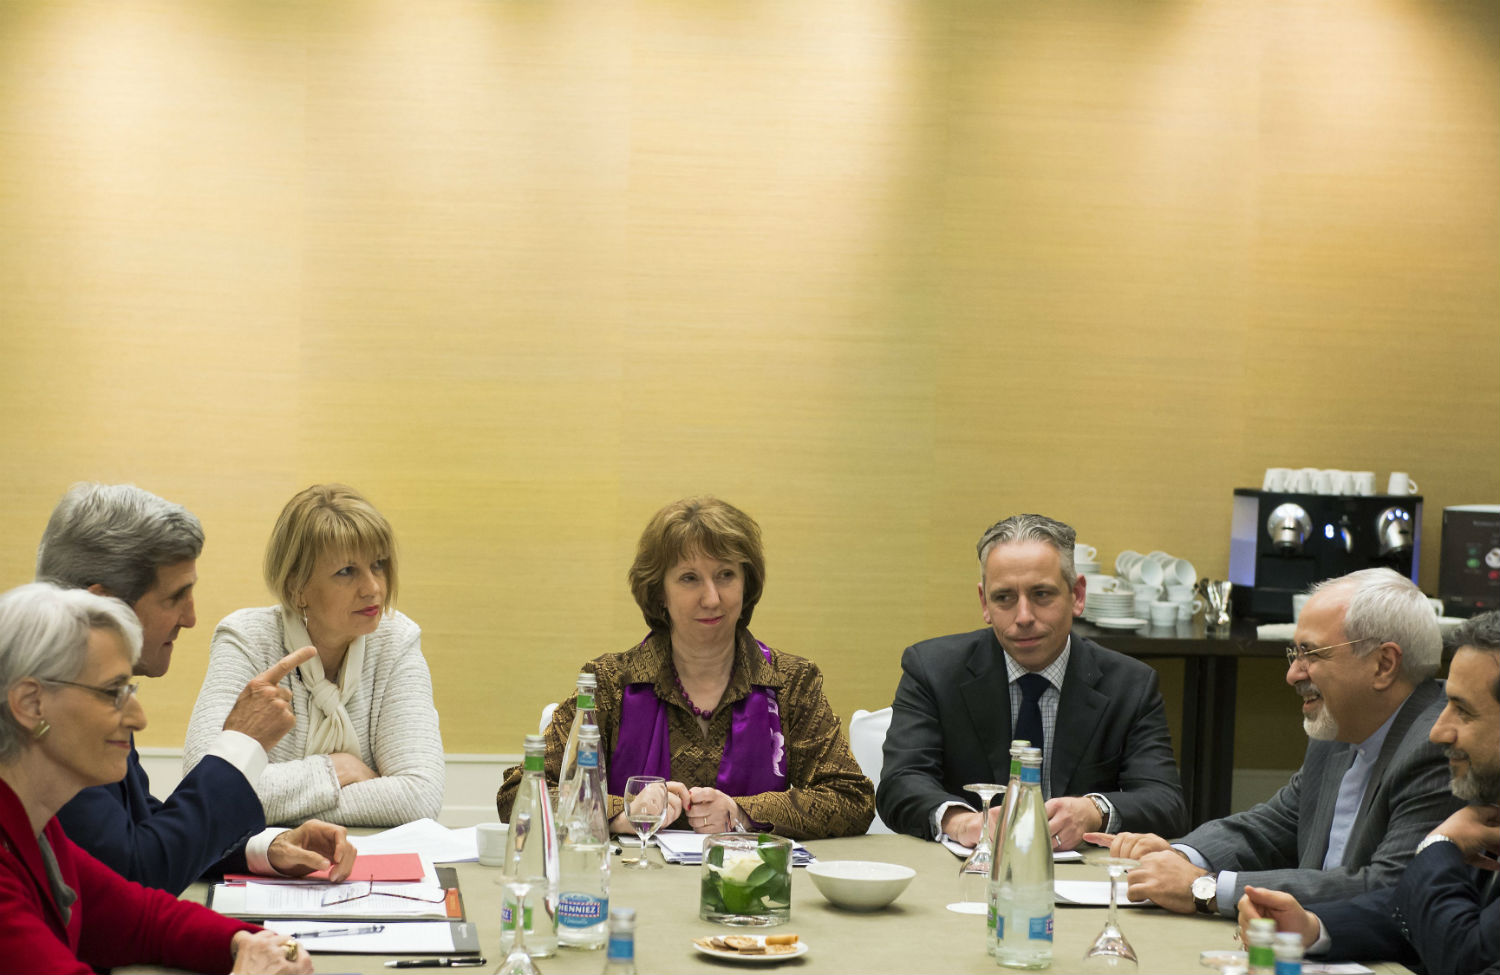 pRepresentatives-from-the-US-the-EU-and-the-Iranian-government-meet-in-Genevap